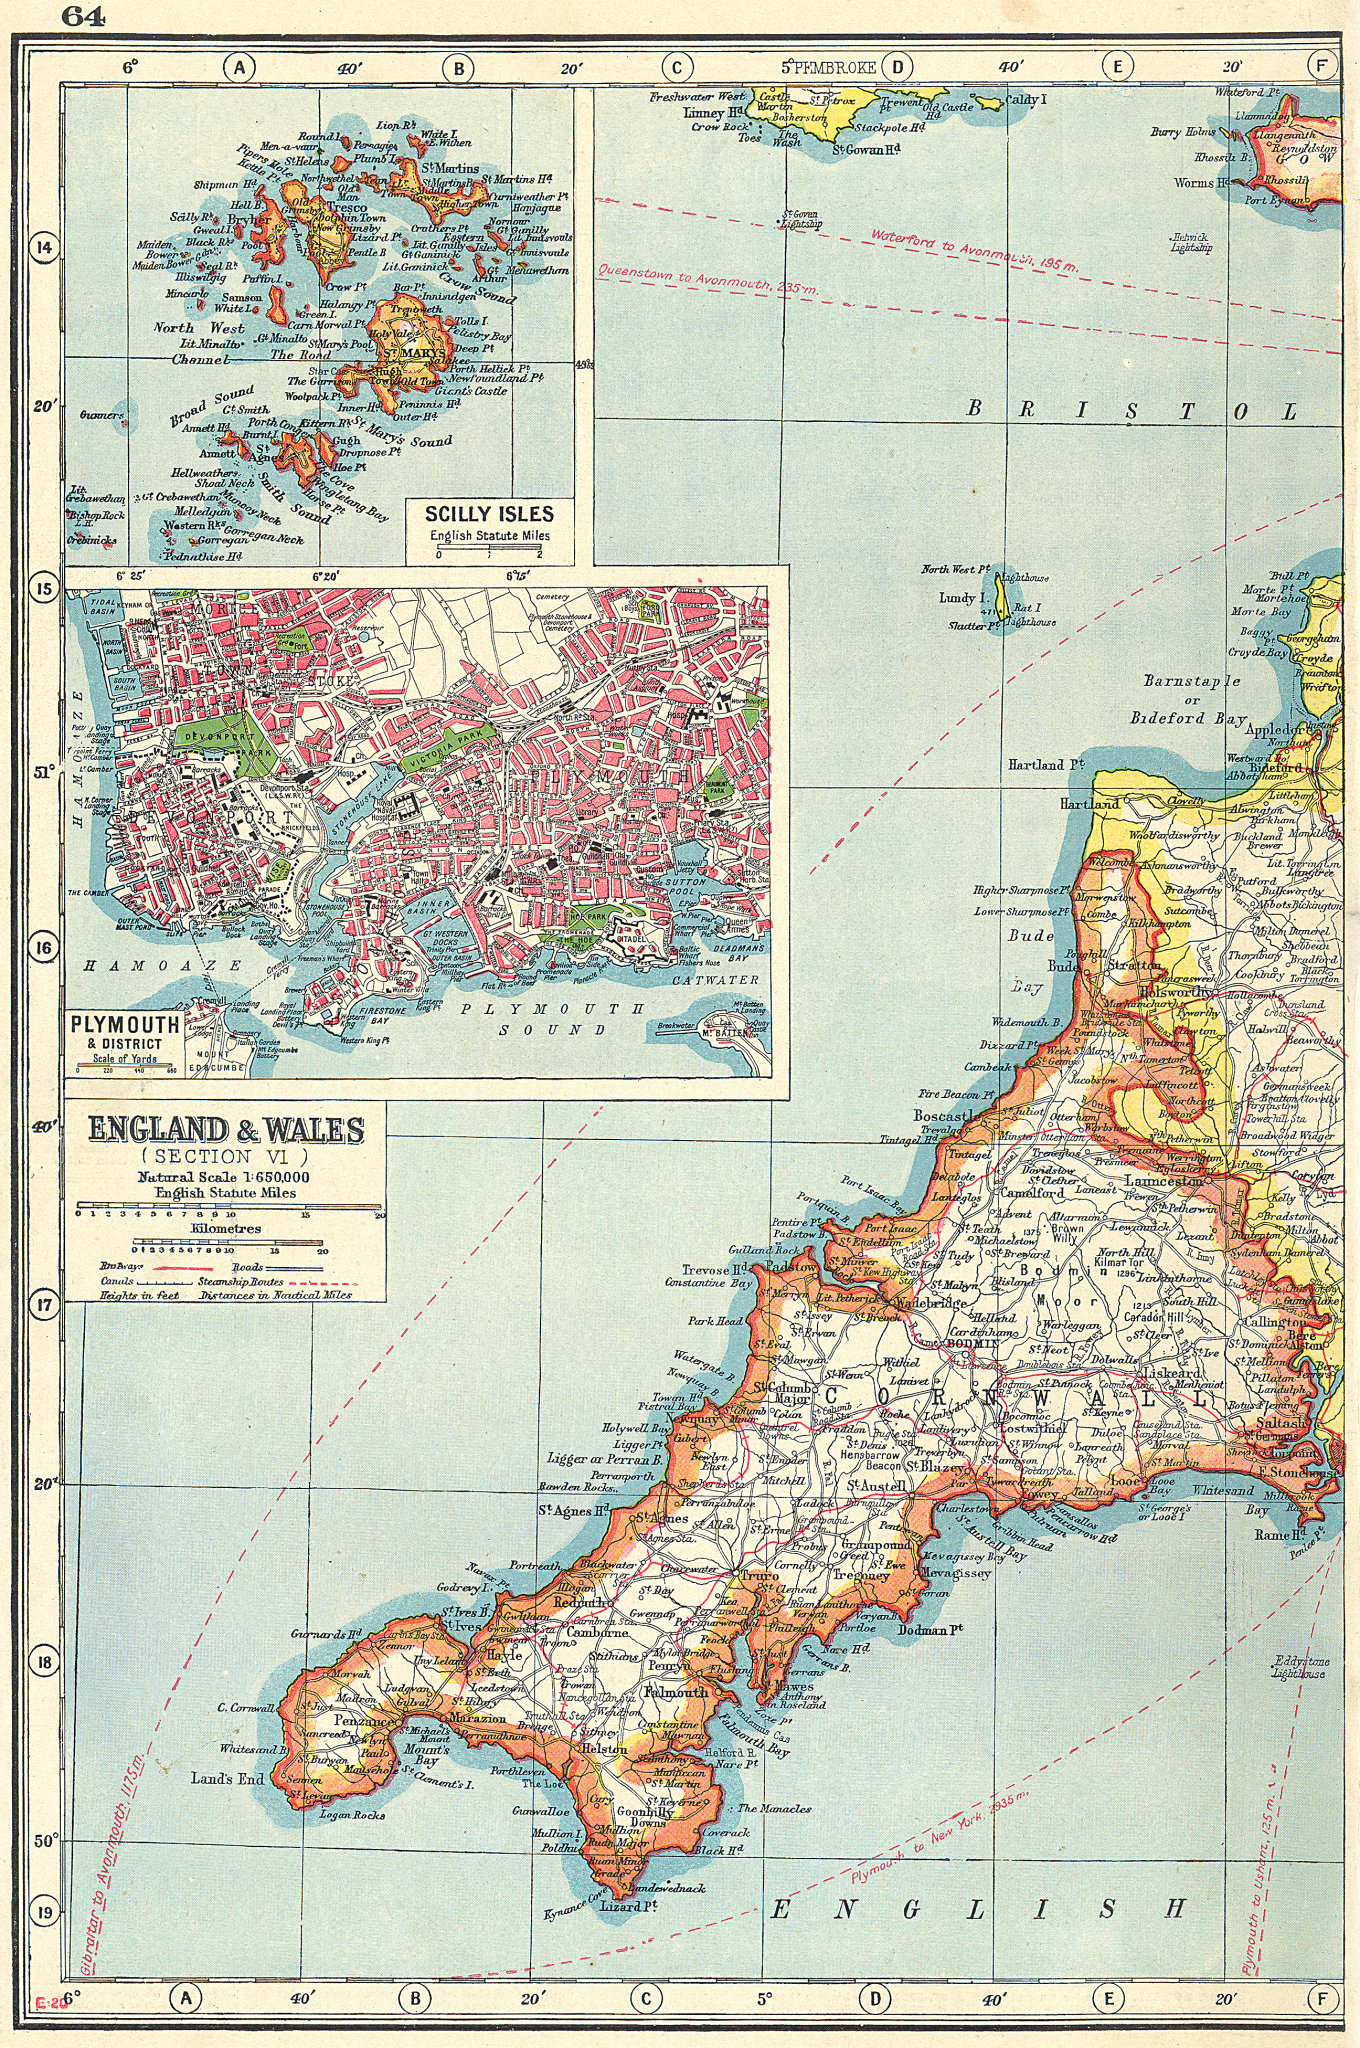 Associate Product CORNWALL. inset Scilly Isles & plan of Plymouth & Devonport 1920 old map